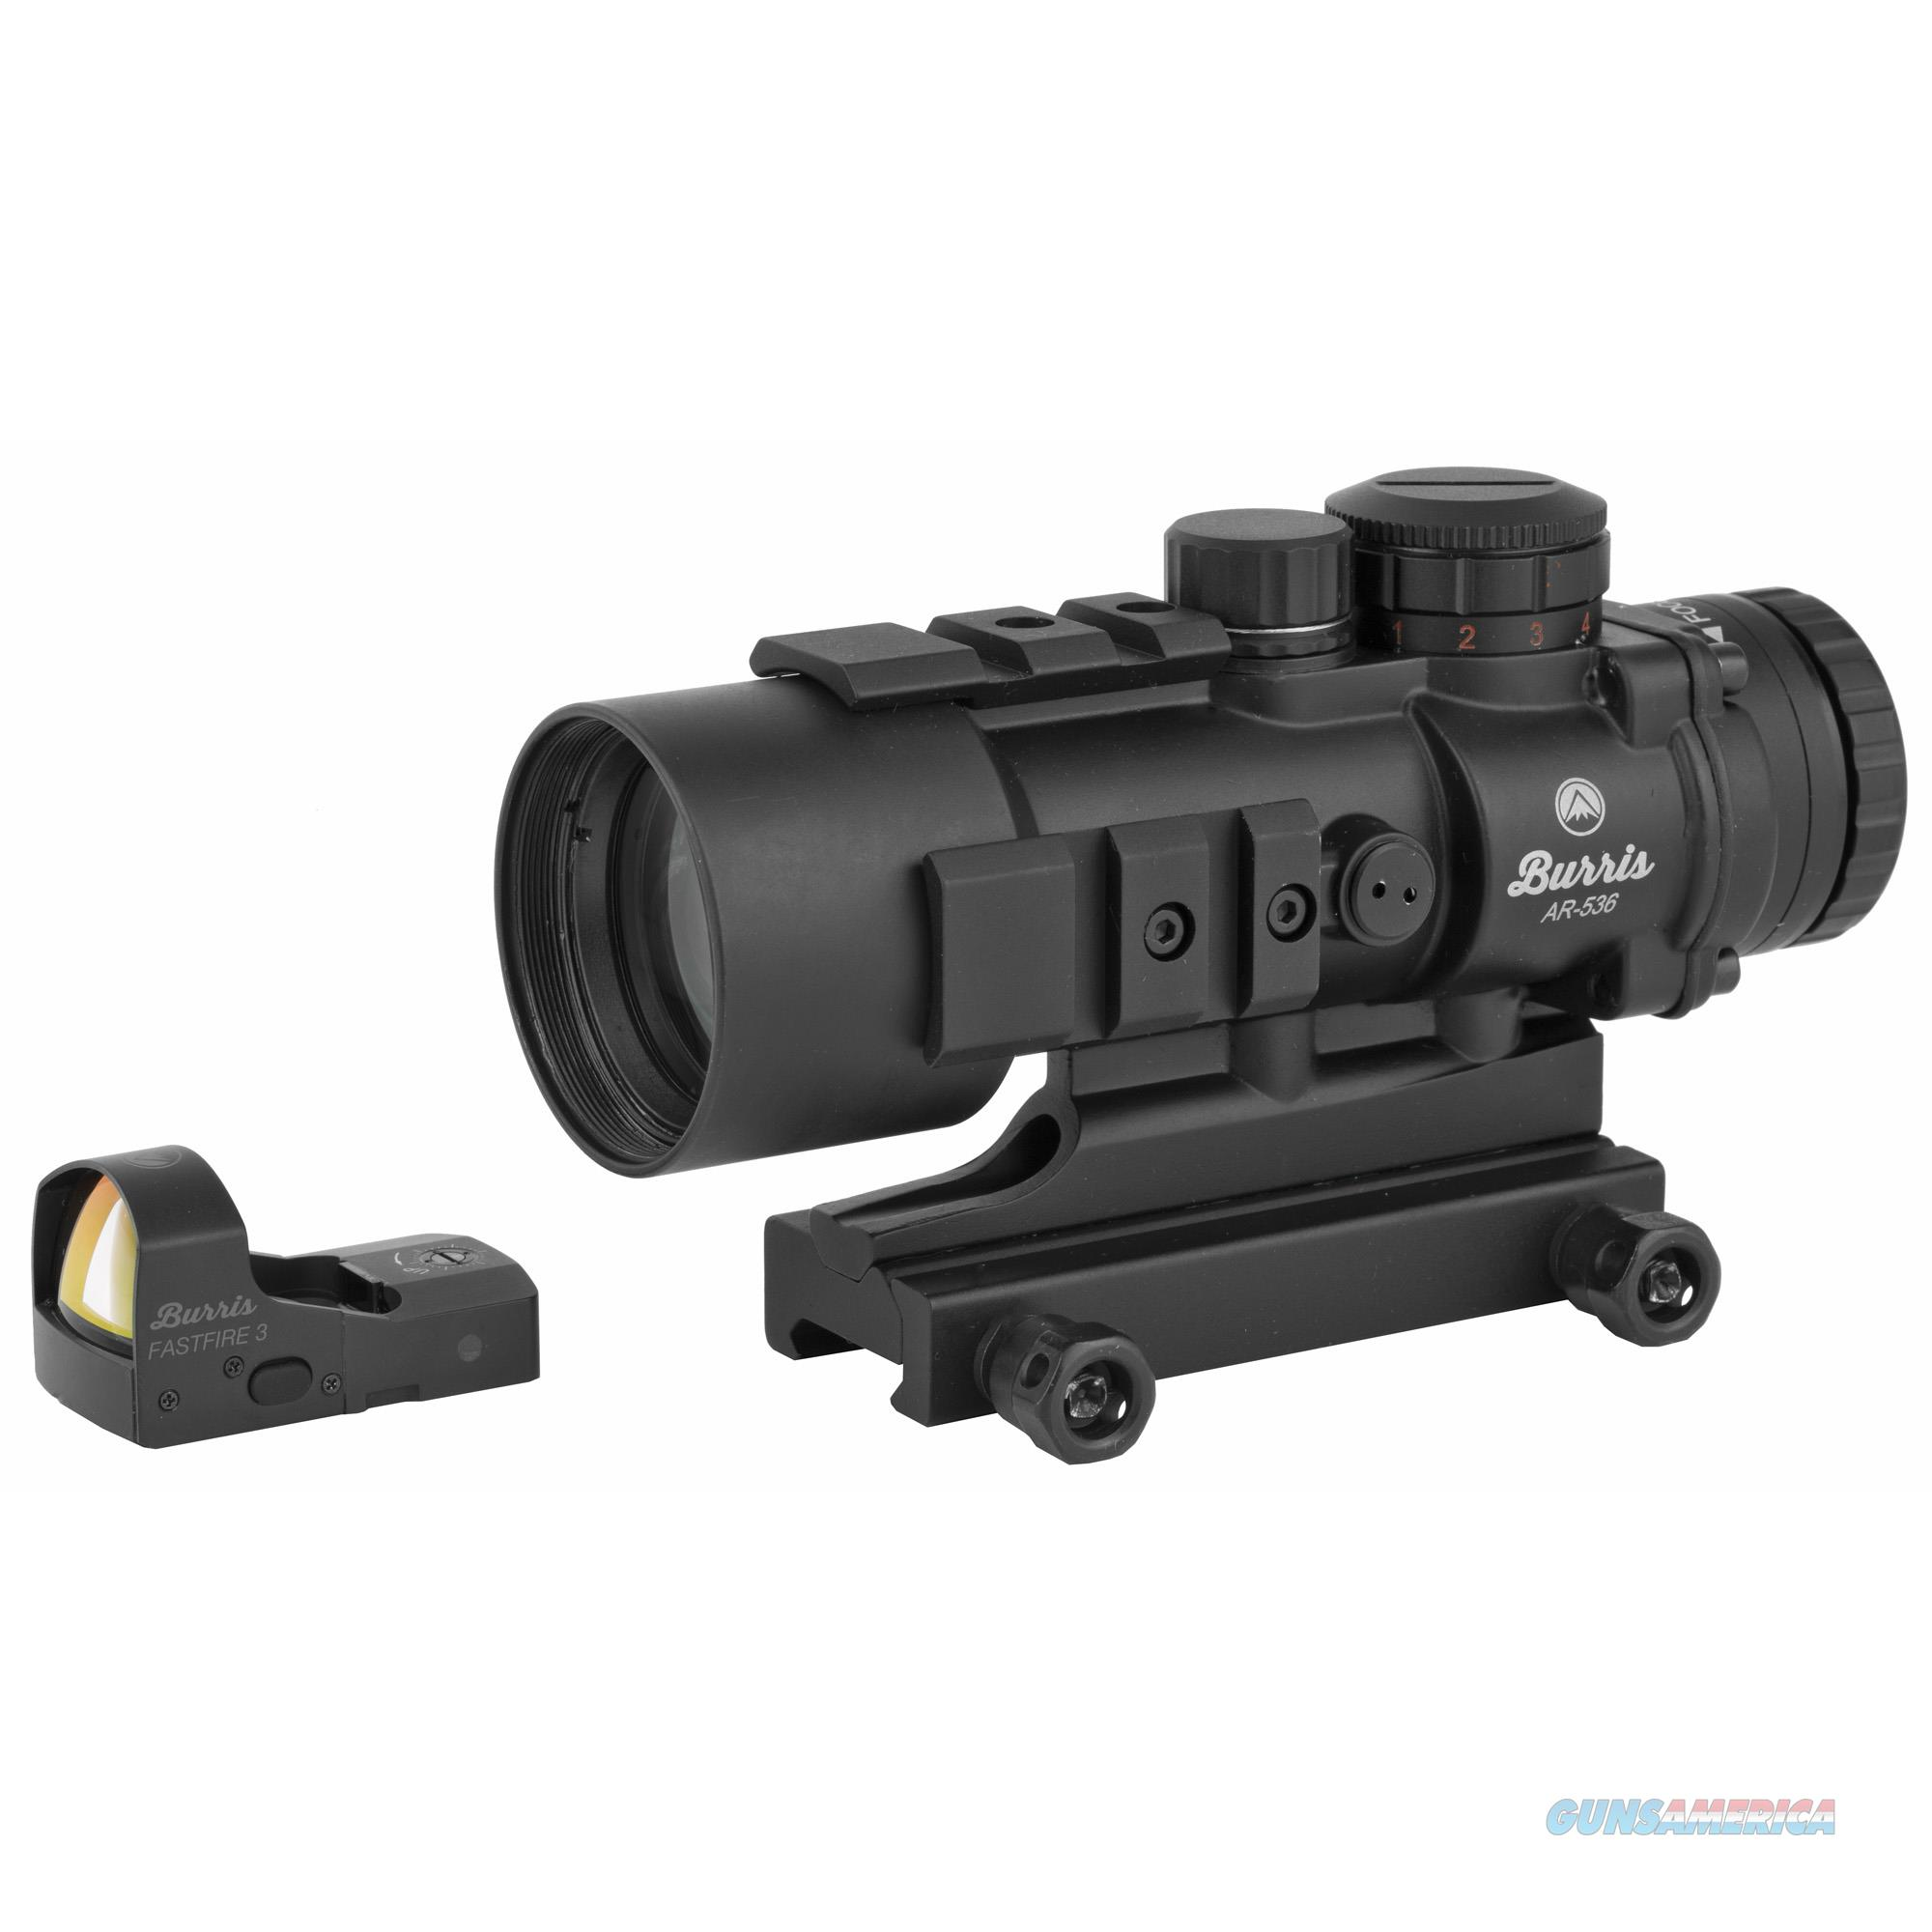 Burris AR-536 Rifle Scope 5X-36mm Free Fastfire Promotion, AR-Prism, 5X Power, Ballistic 5X Reticle, Illuminated Reticle, FastFire3, Flip-Up Lens Covers Matte Black Finish 300179  Non-Guns > Scopes/Mounts/Rings & Optics > Tactical Scopes > Other Head-Up Optics